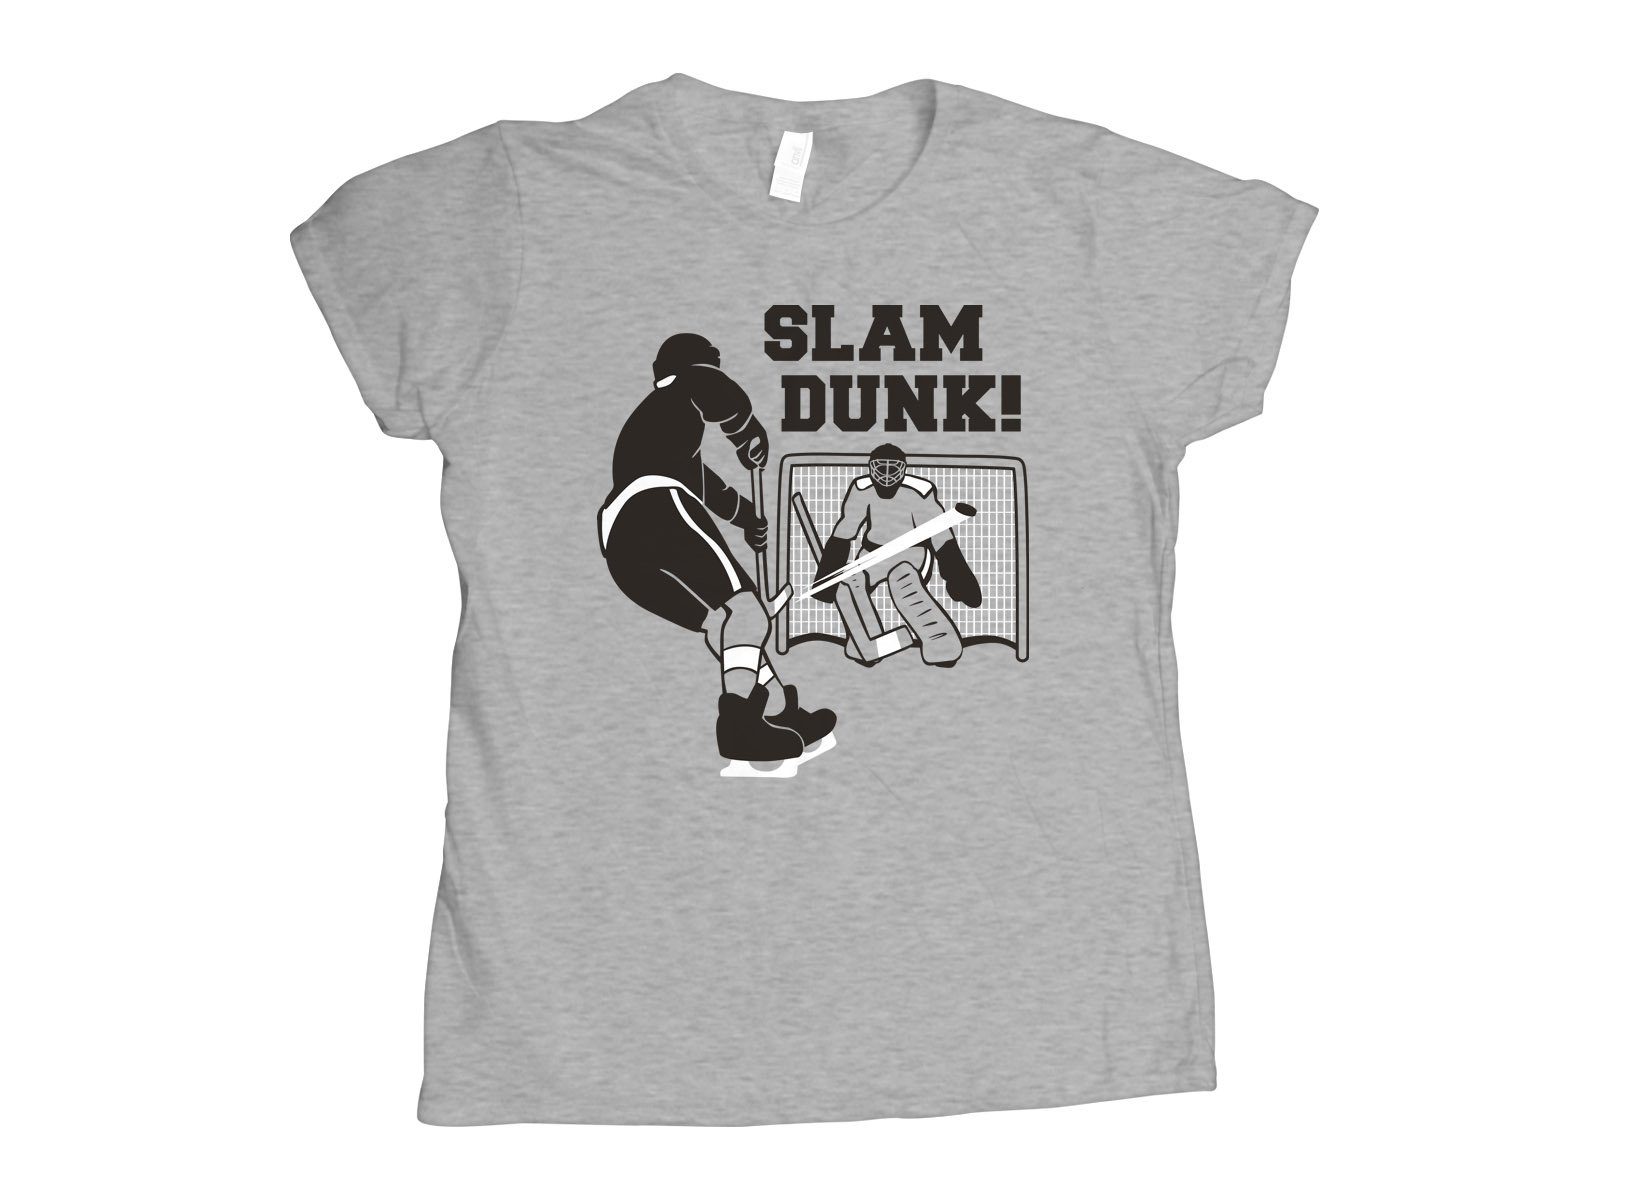 Slam Dunk! on Womens T-Shirt